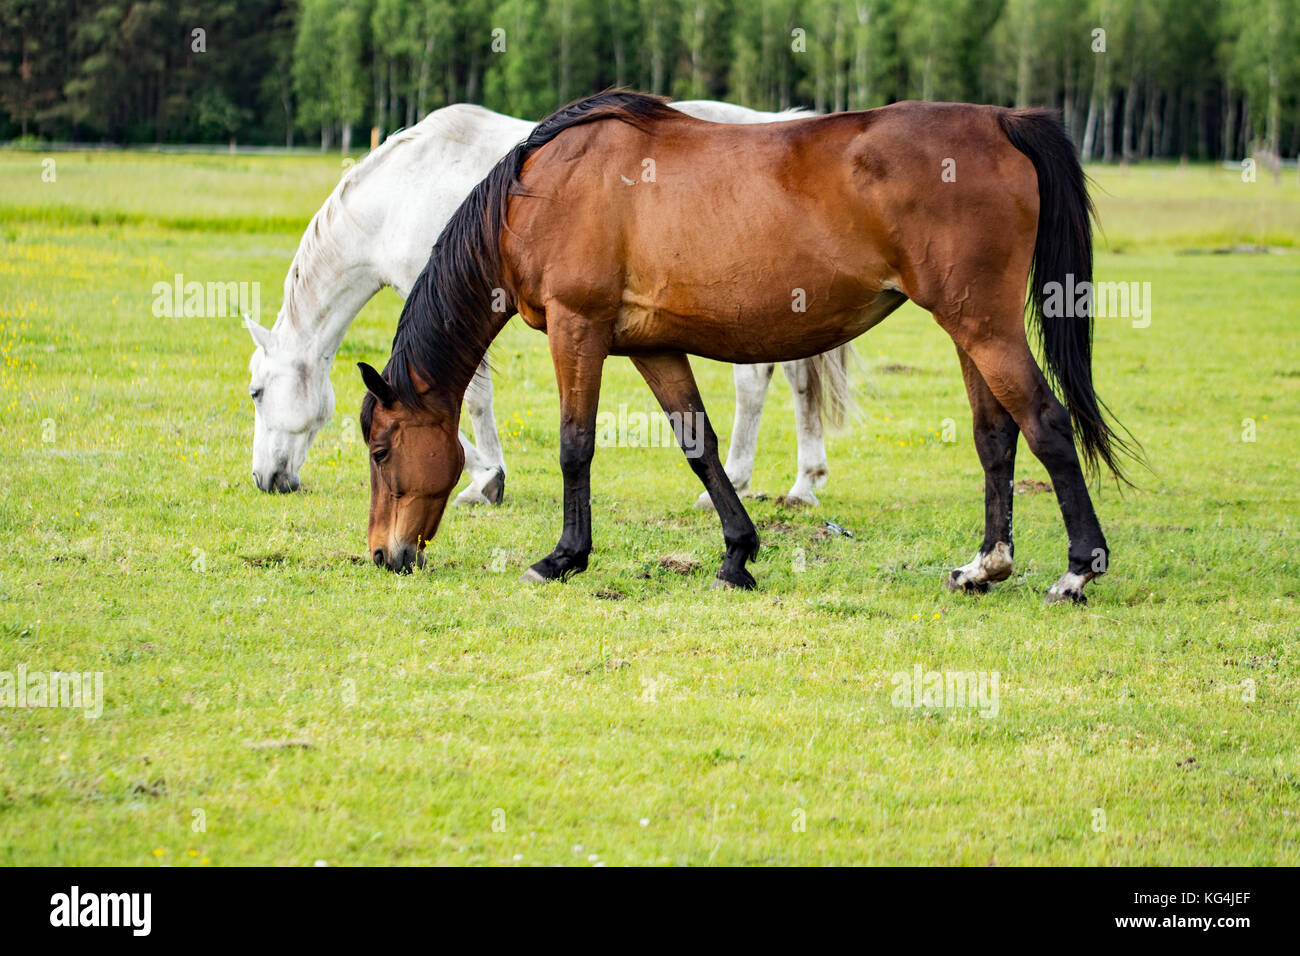 Two beautiful horses grazing on a meadow - Stock Image